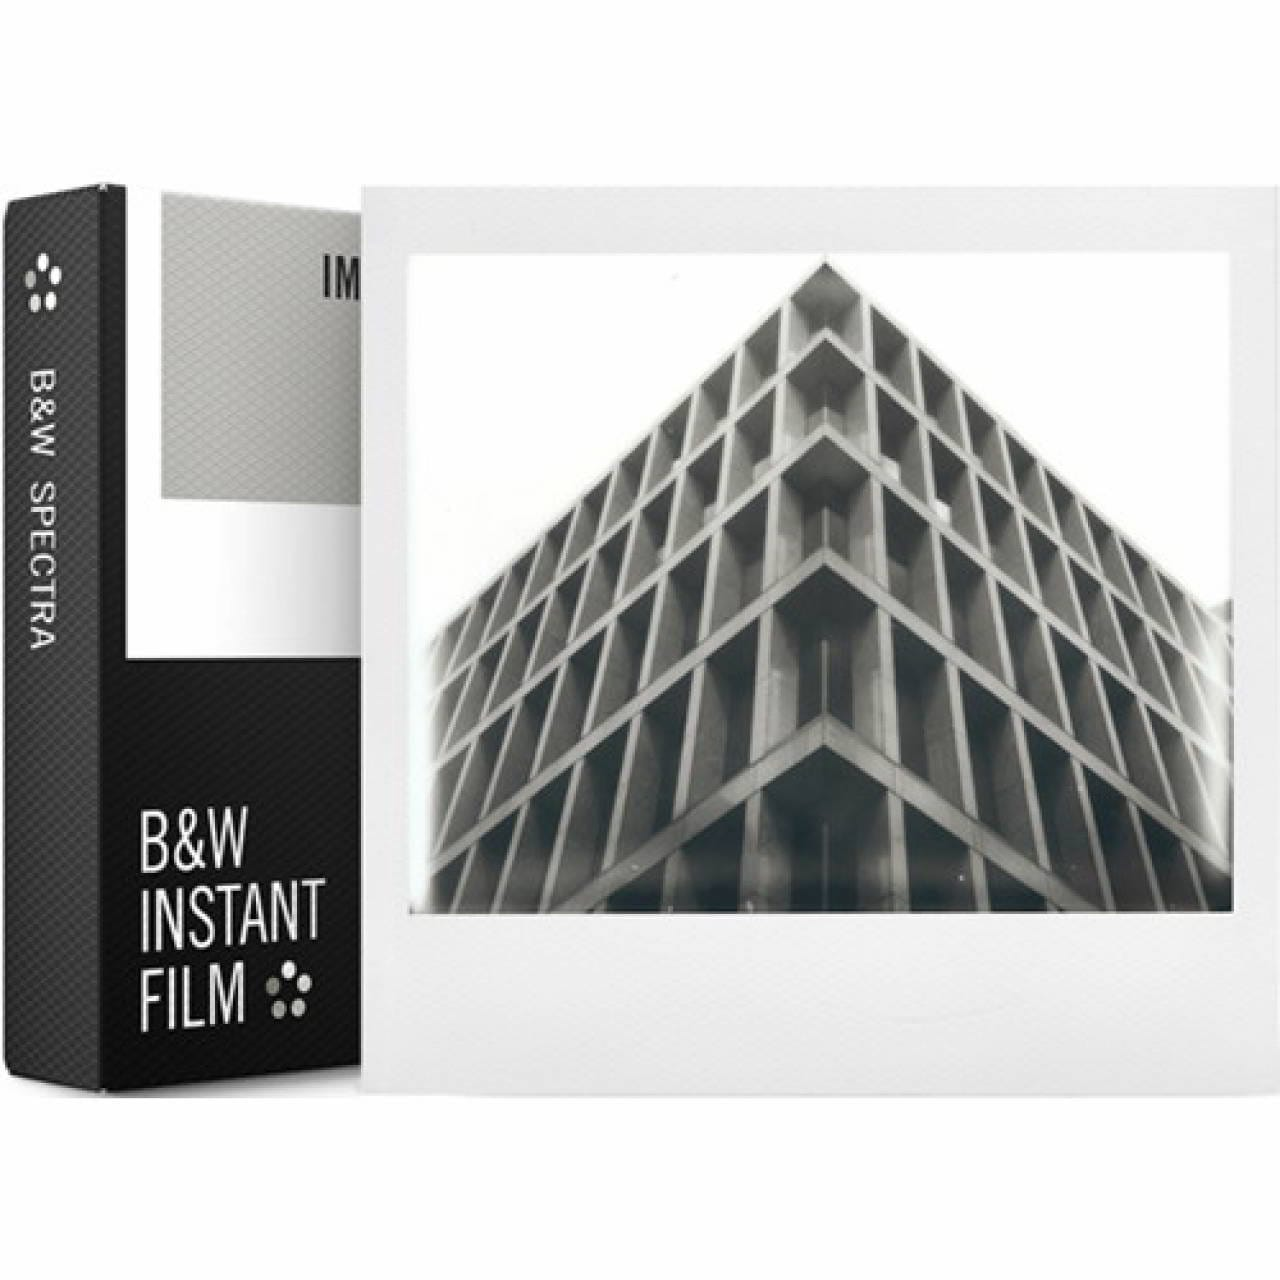 INSTANT BW FILM FOR IMAGES/SPECTRA  CAMERAS